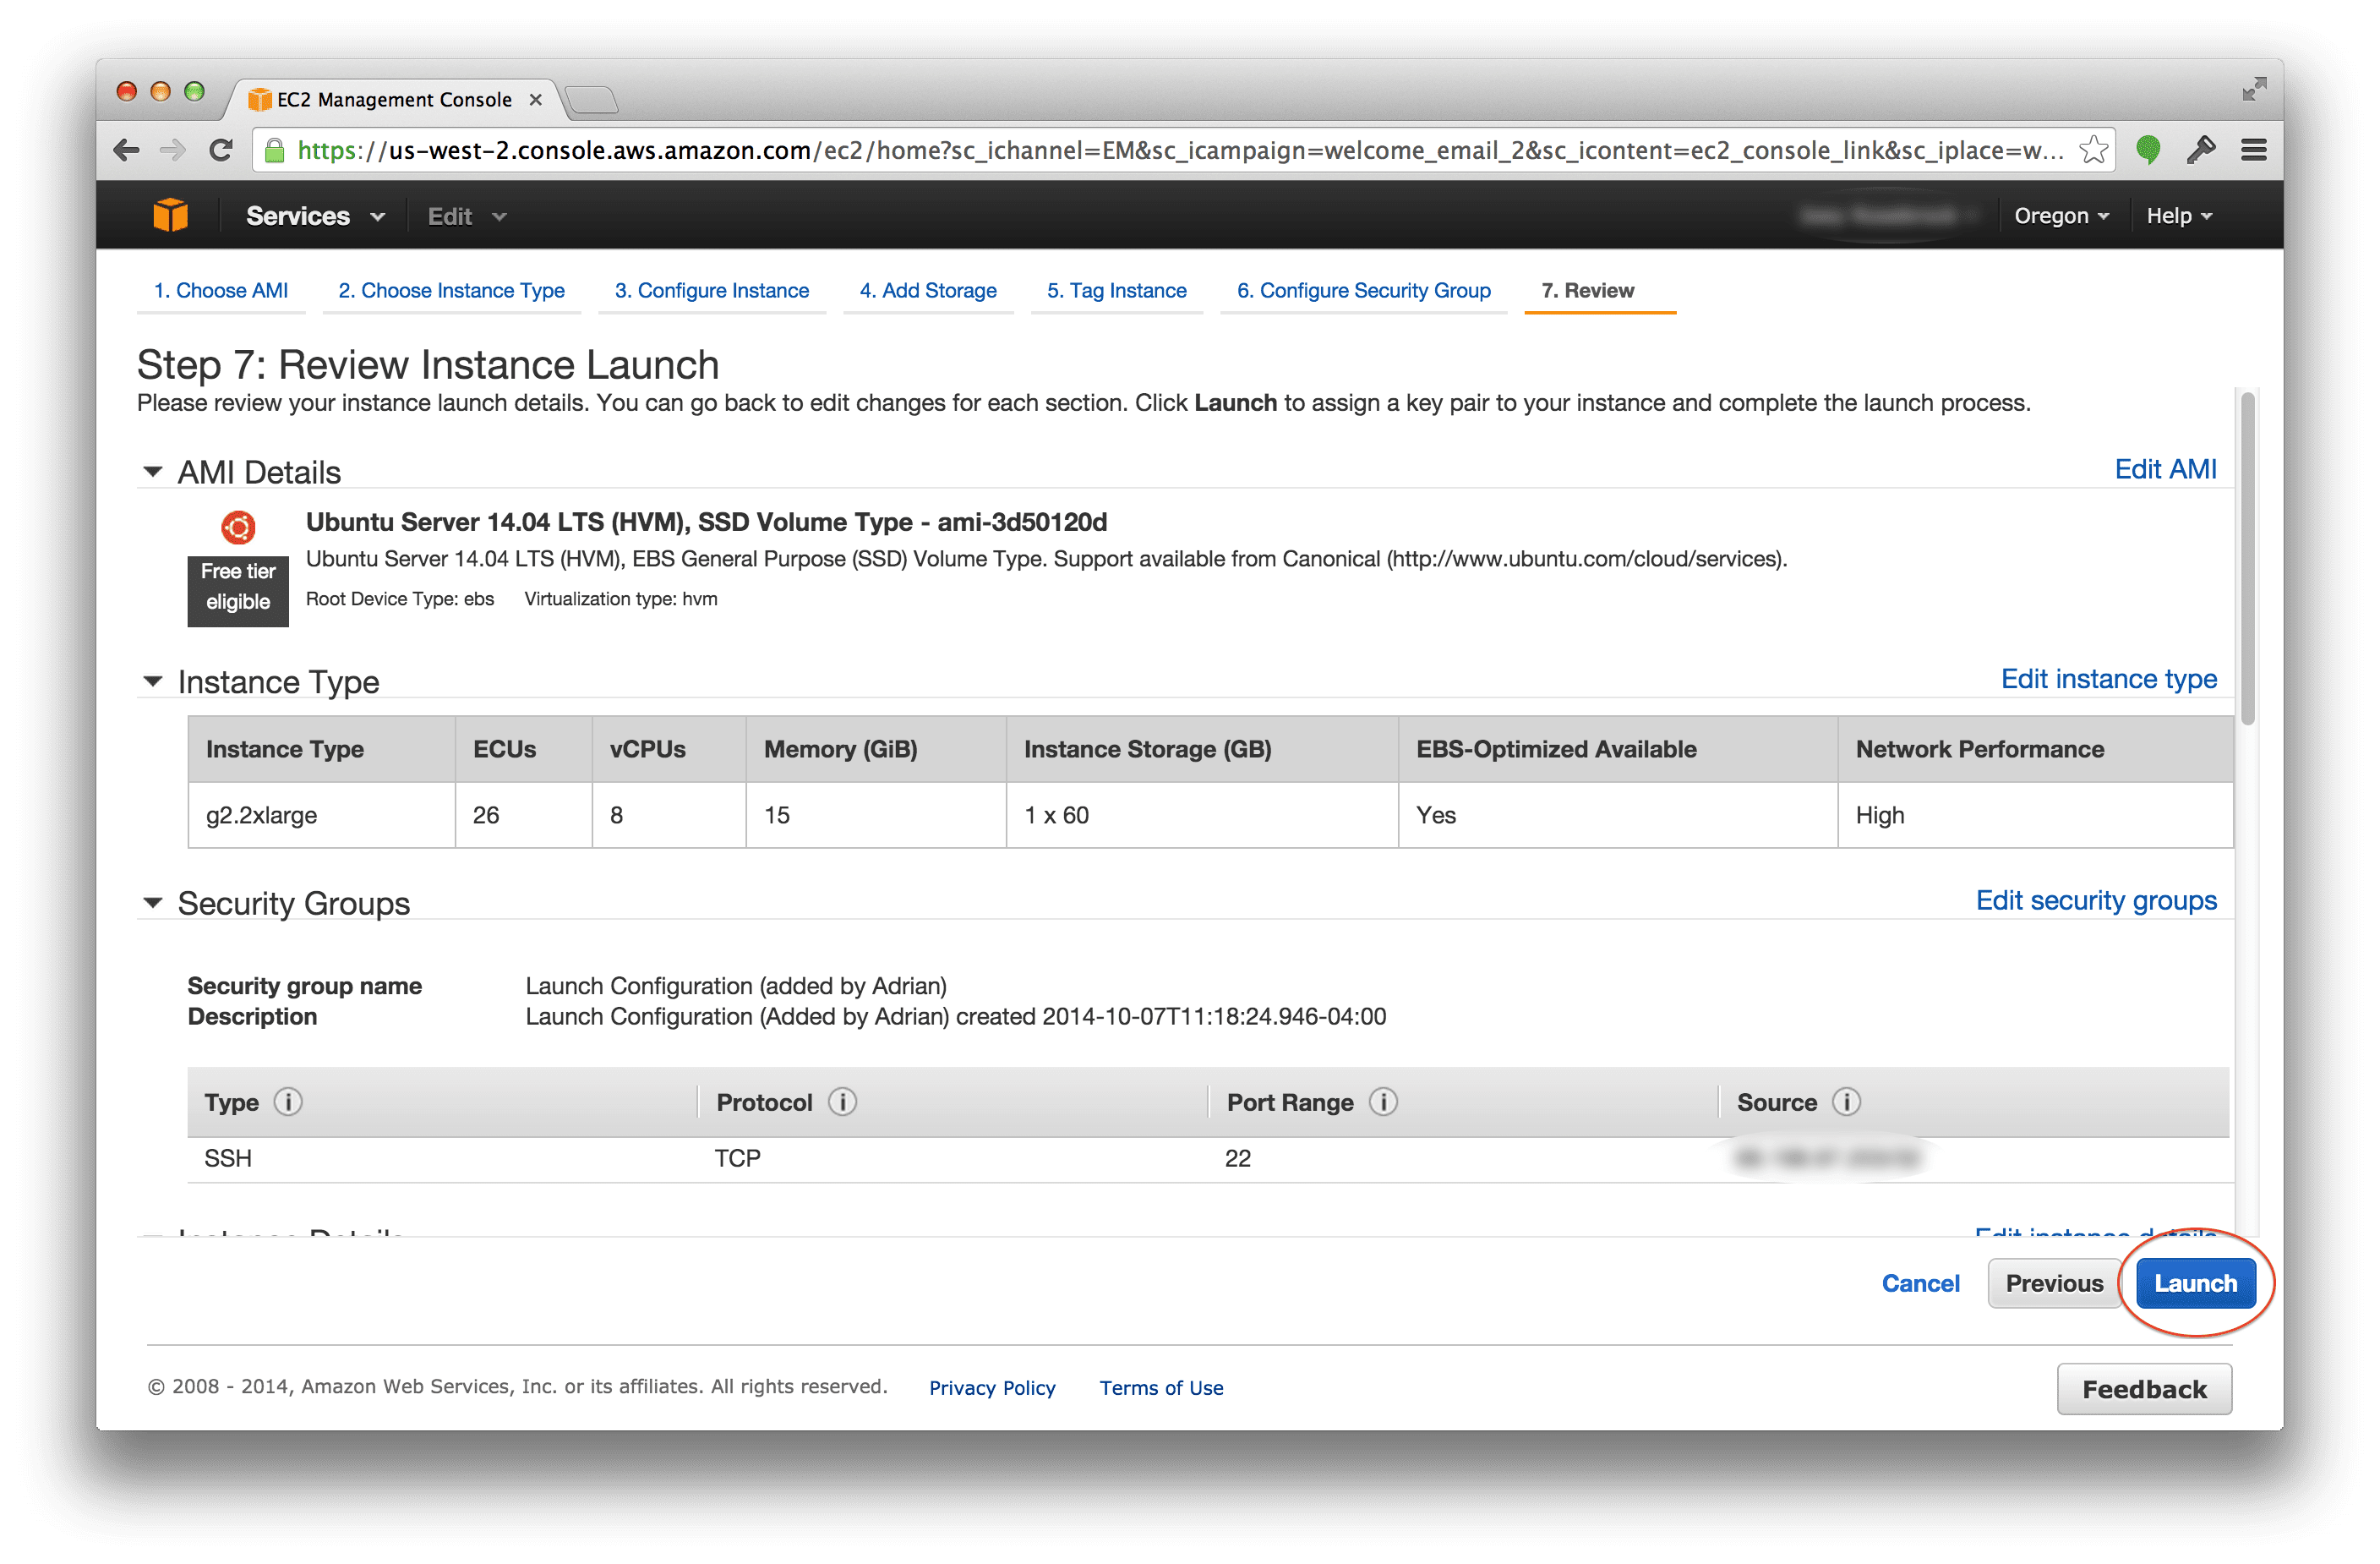 Launching your g2.2xlarge Amazon EC2 instance